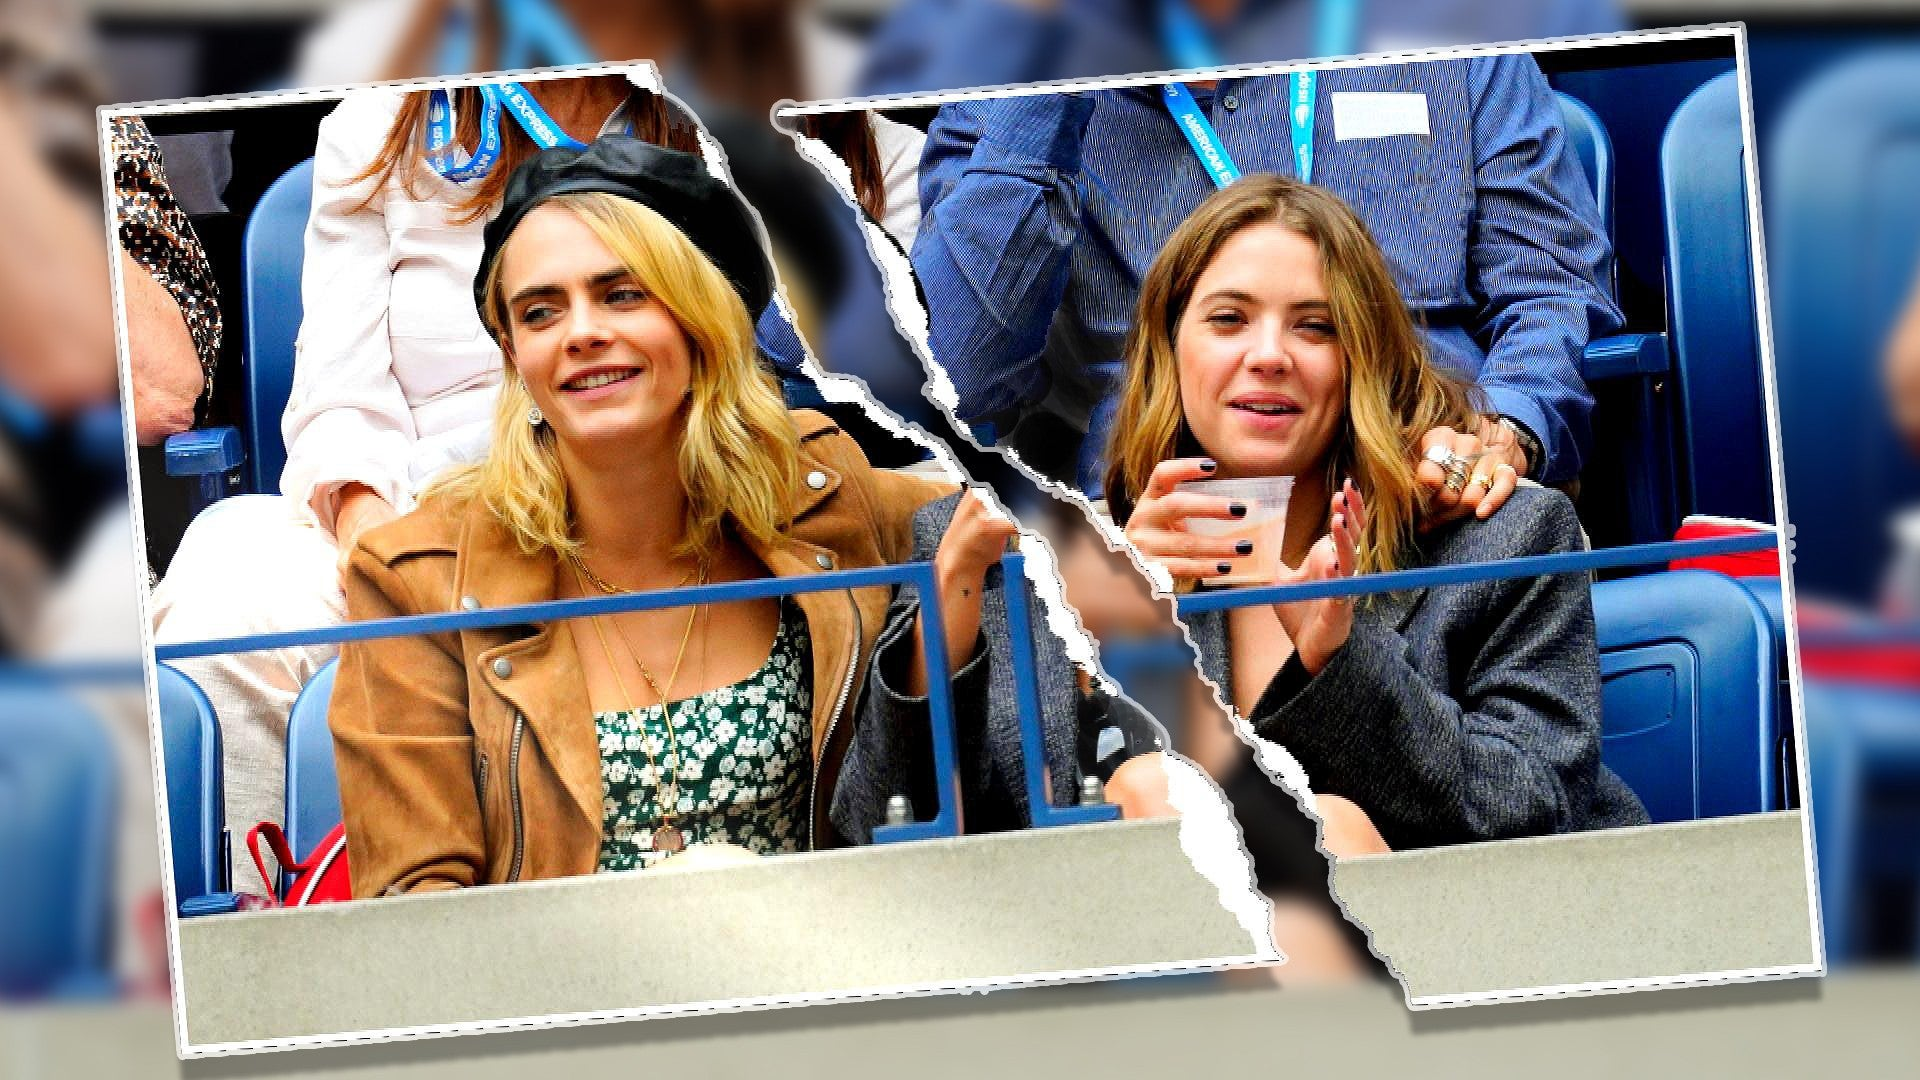 Cara Delevingne And Ashley Benson Split After Nearly 2 Years Of